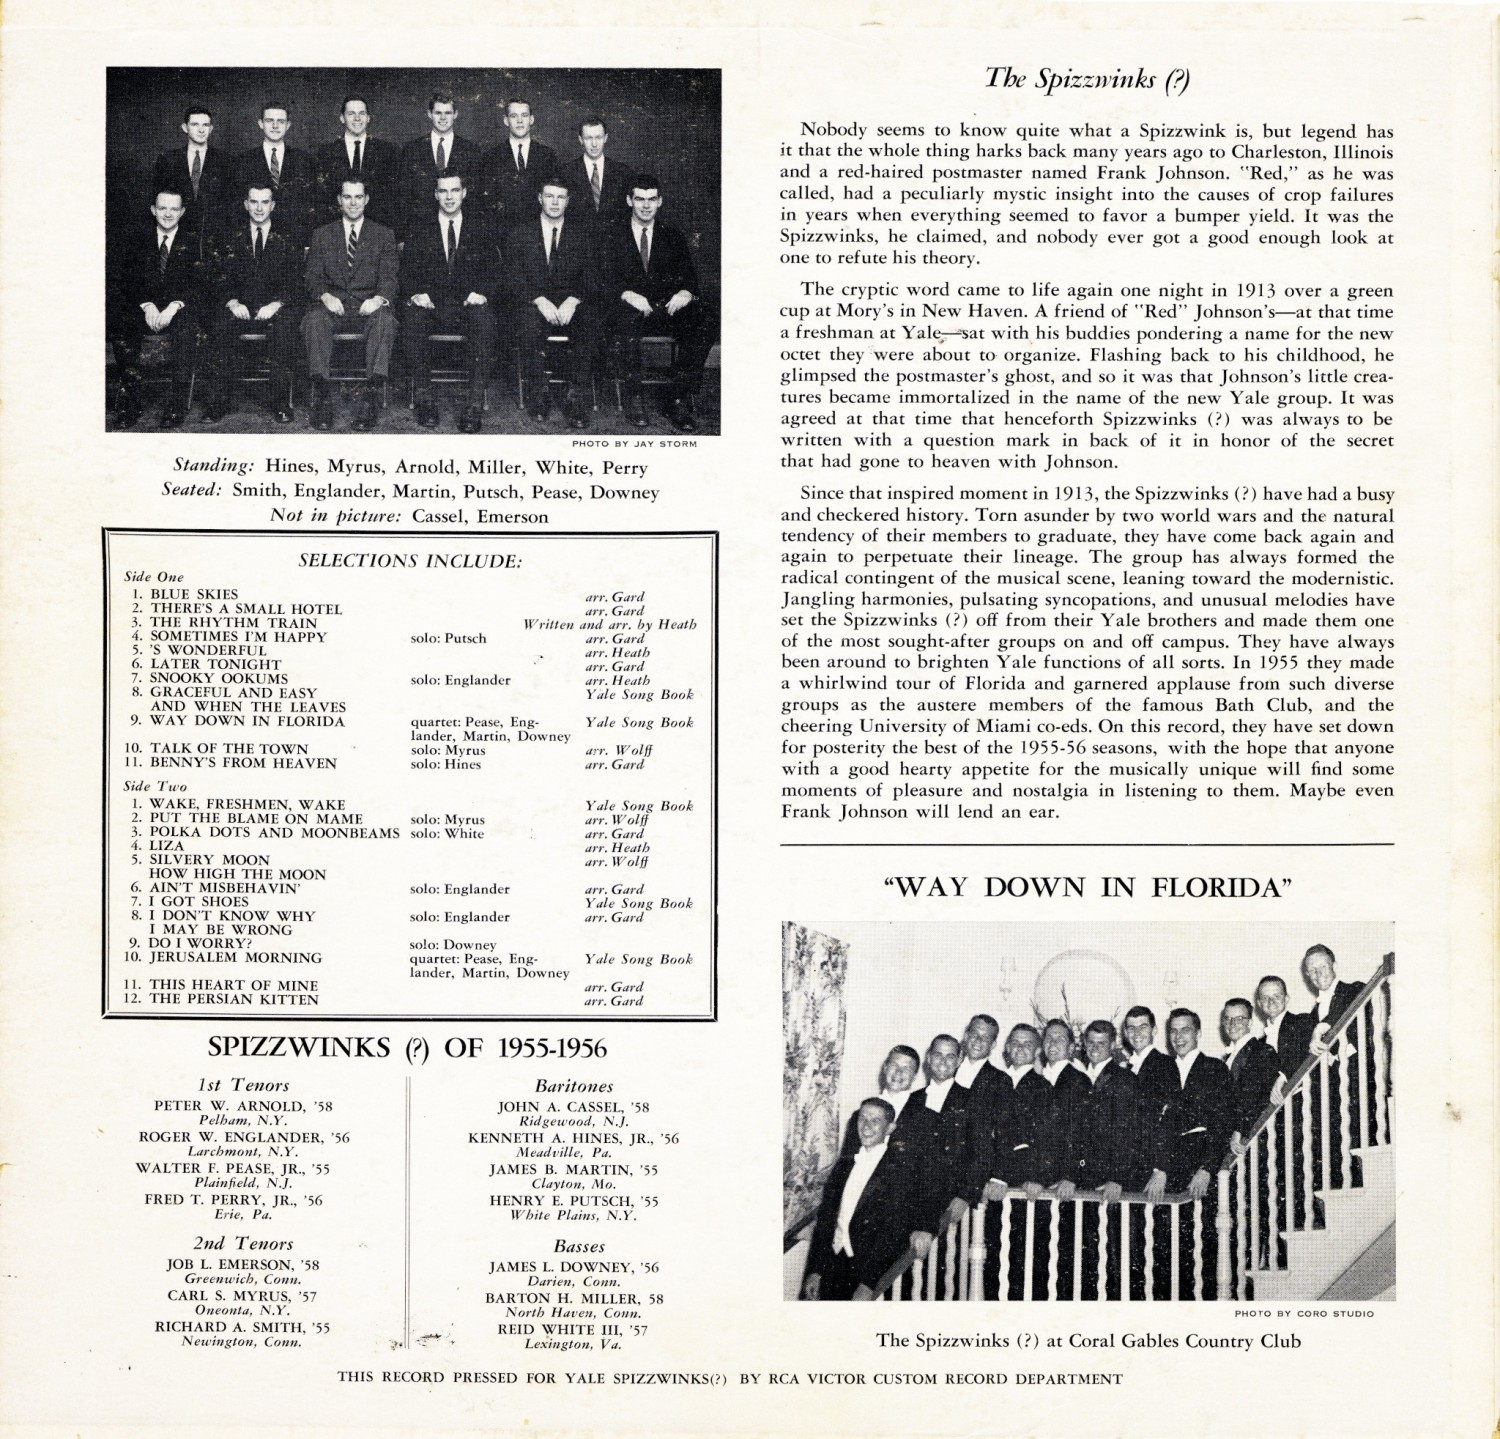 1956 Songs of the Yale Spizzwinks - rear cover